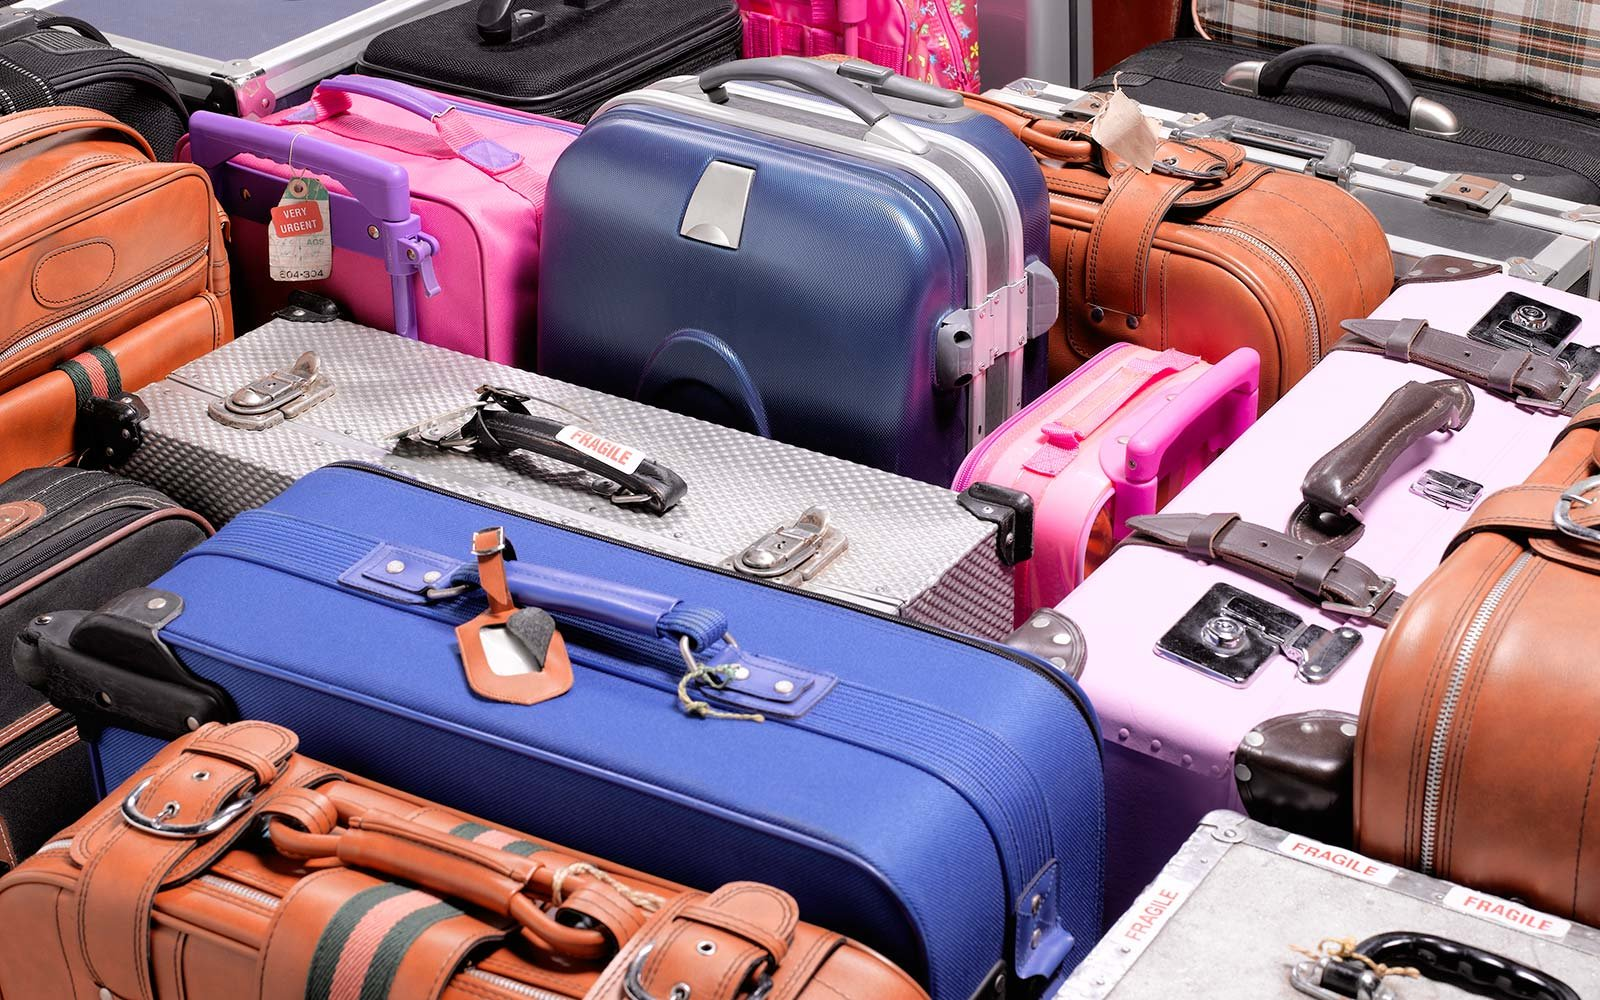 Variaty of suitcases, close up